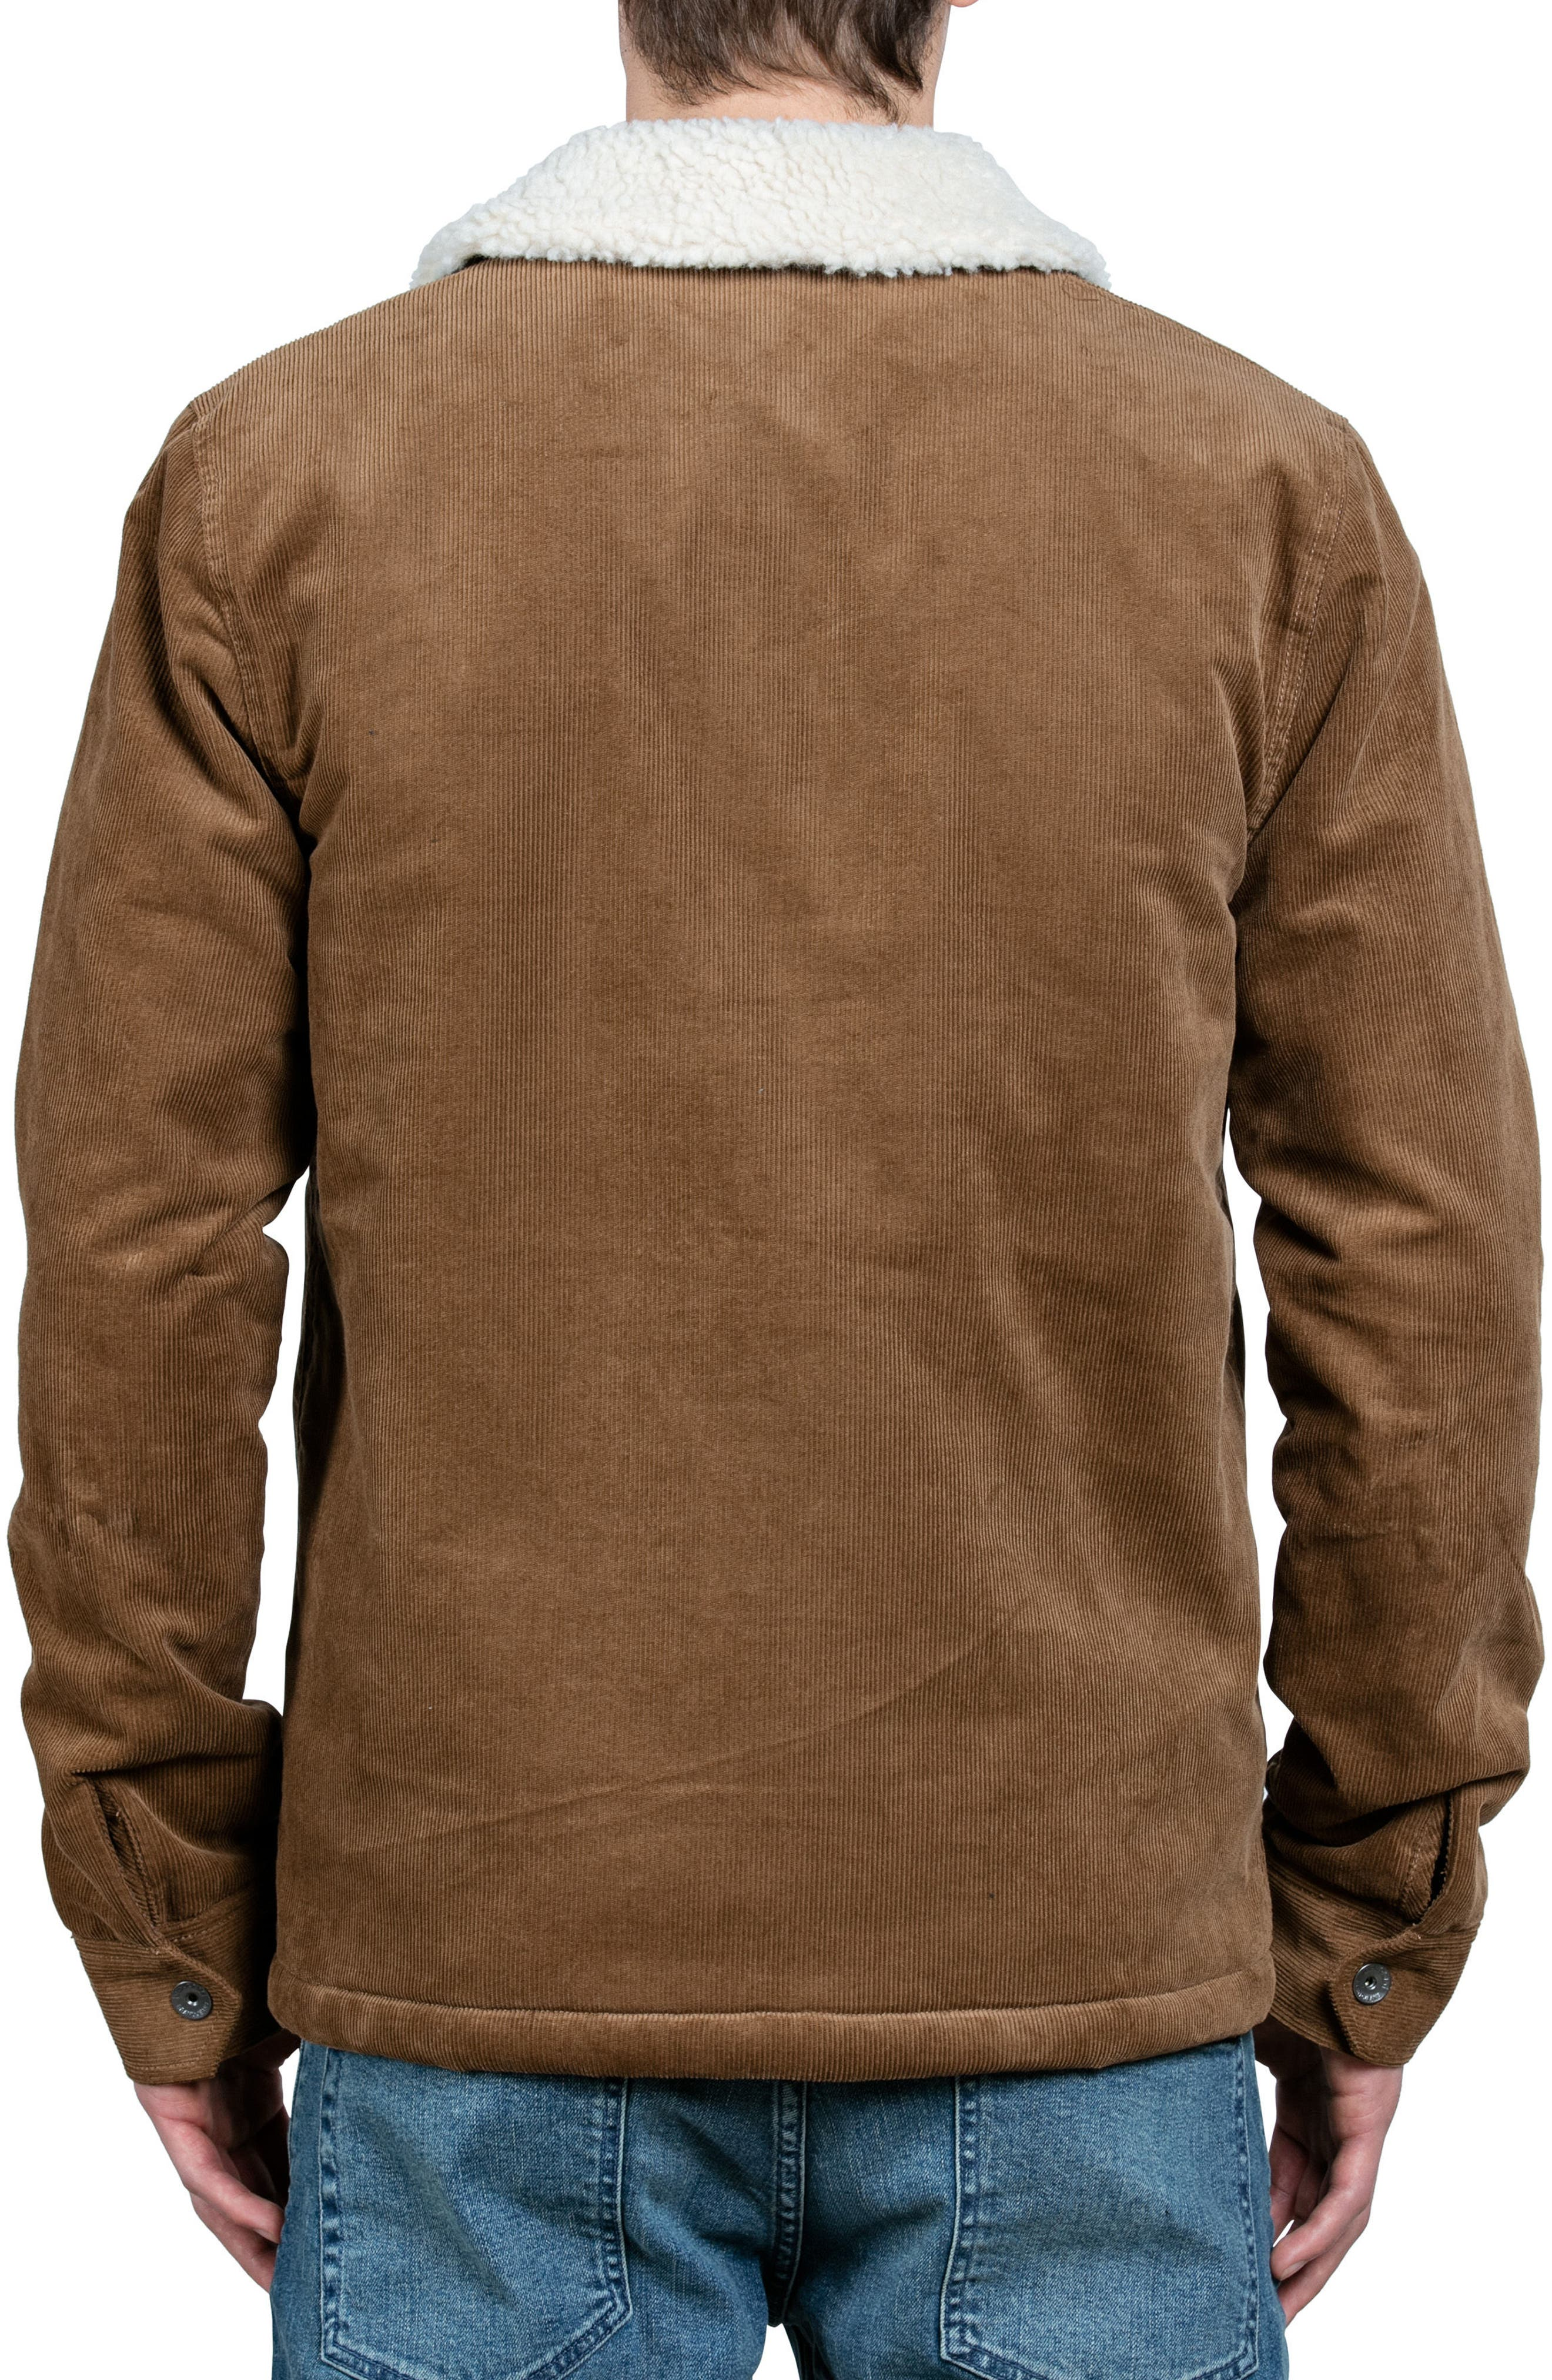 Keaton Jacket with Faux Shearling Trim,                             Alternate thumbnail 2, color,                             Brown